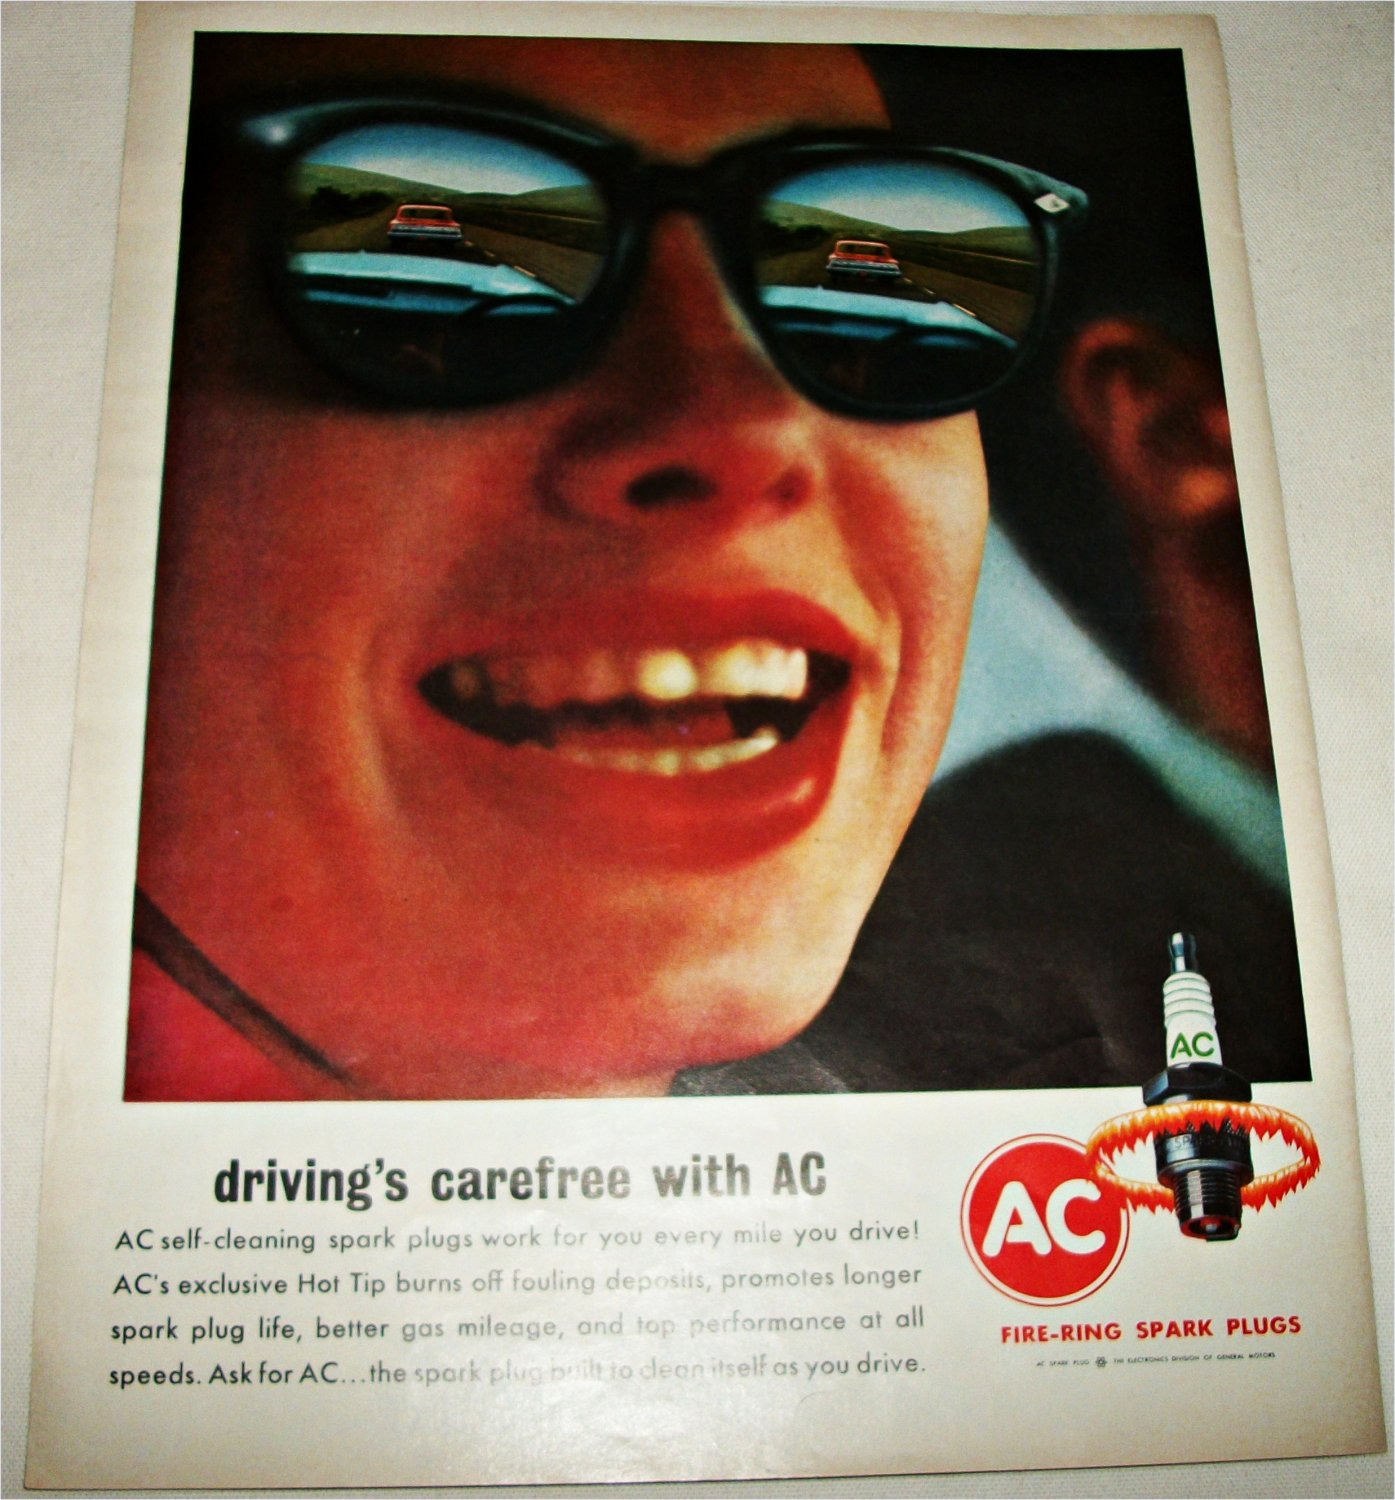 1965 AC Fire-Ring Spark Plugs ad